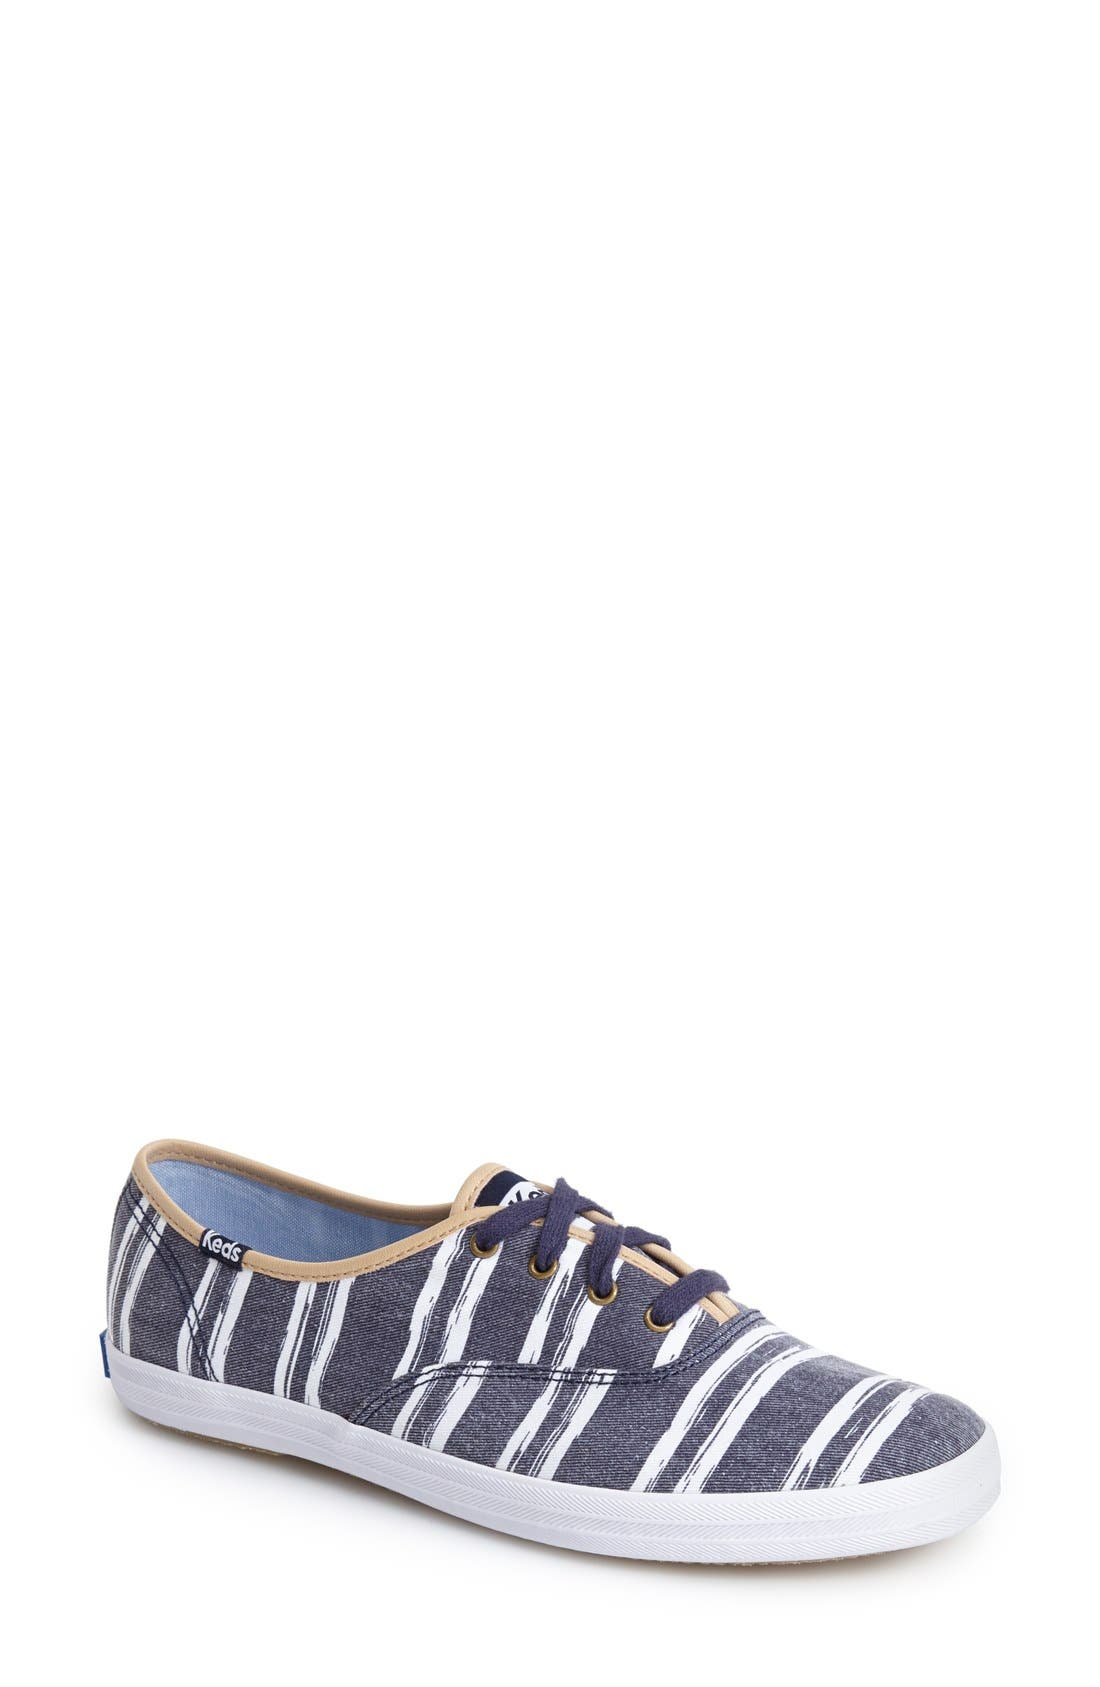 Alternate Image 1 Selected - Keds® 'Champion - Washed Beach Stripe' Sneaker (Women)